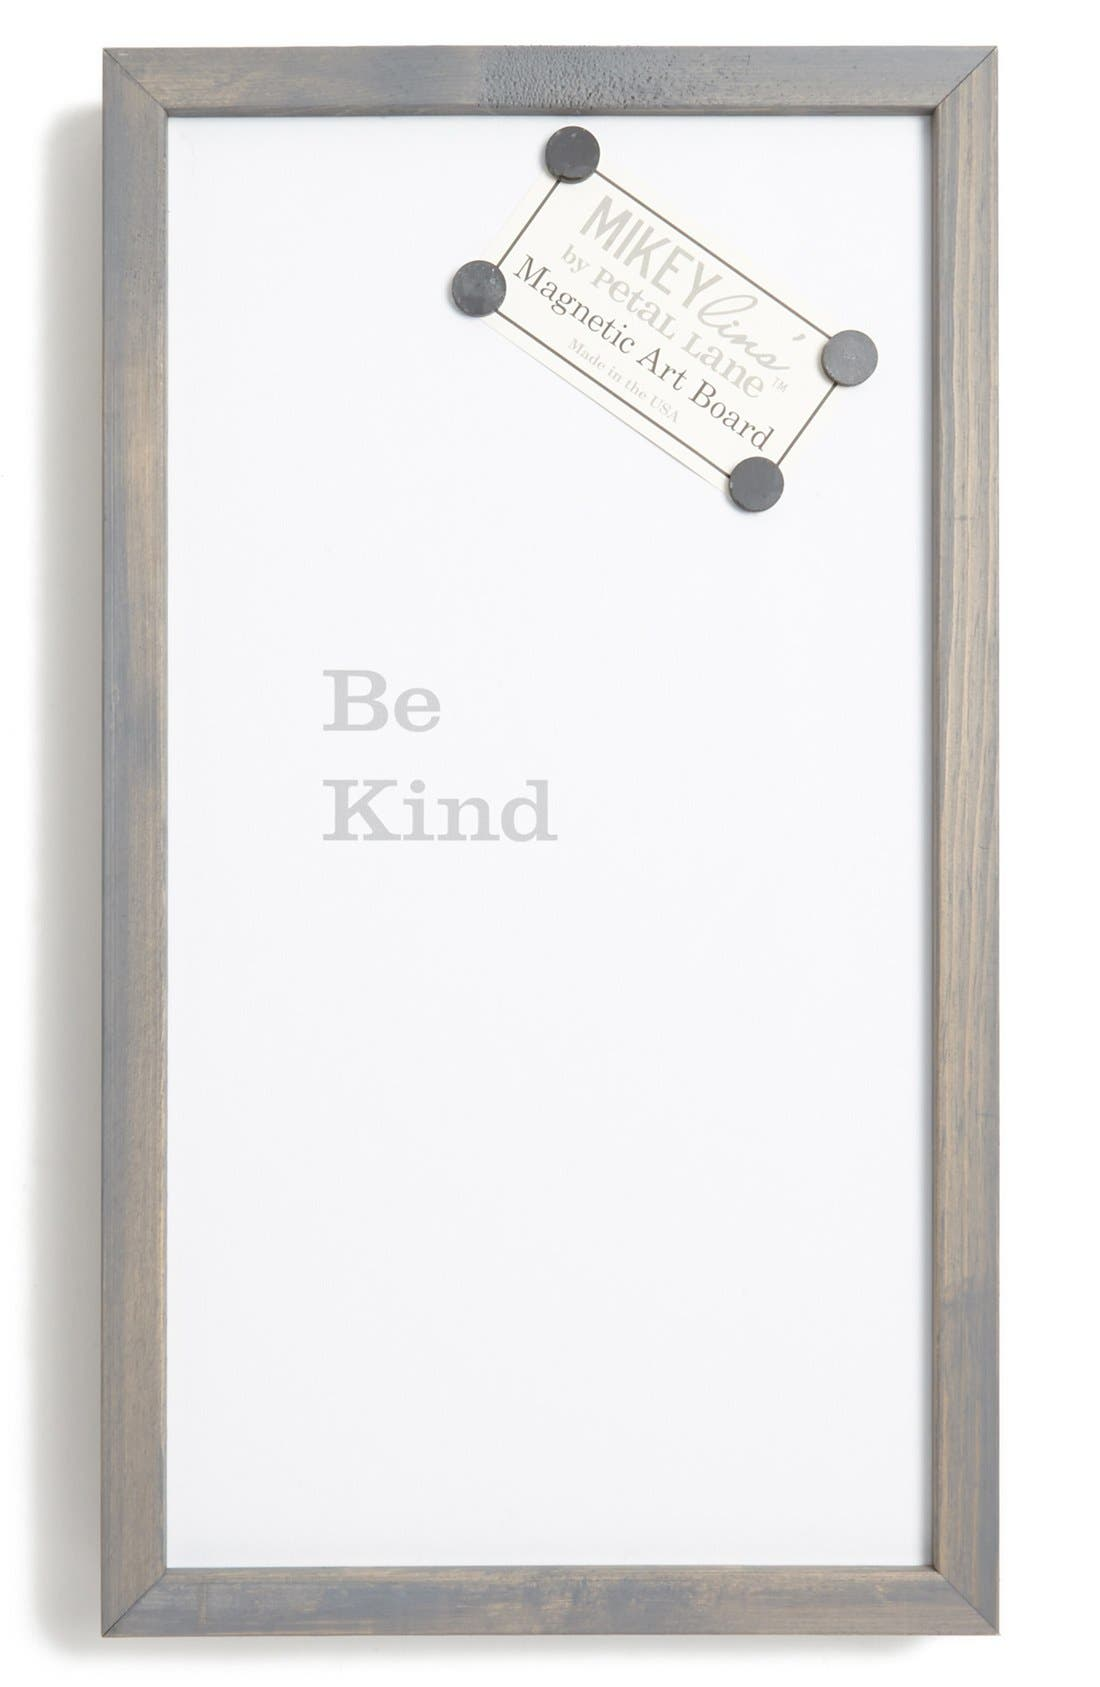 Alternate Image 1 Selected - Petal Lane 'Be Kind' Quotable Framed Magnet Art Board